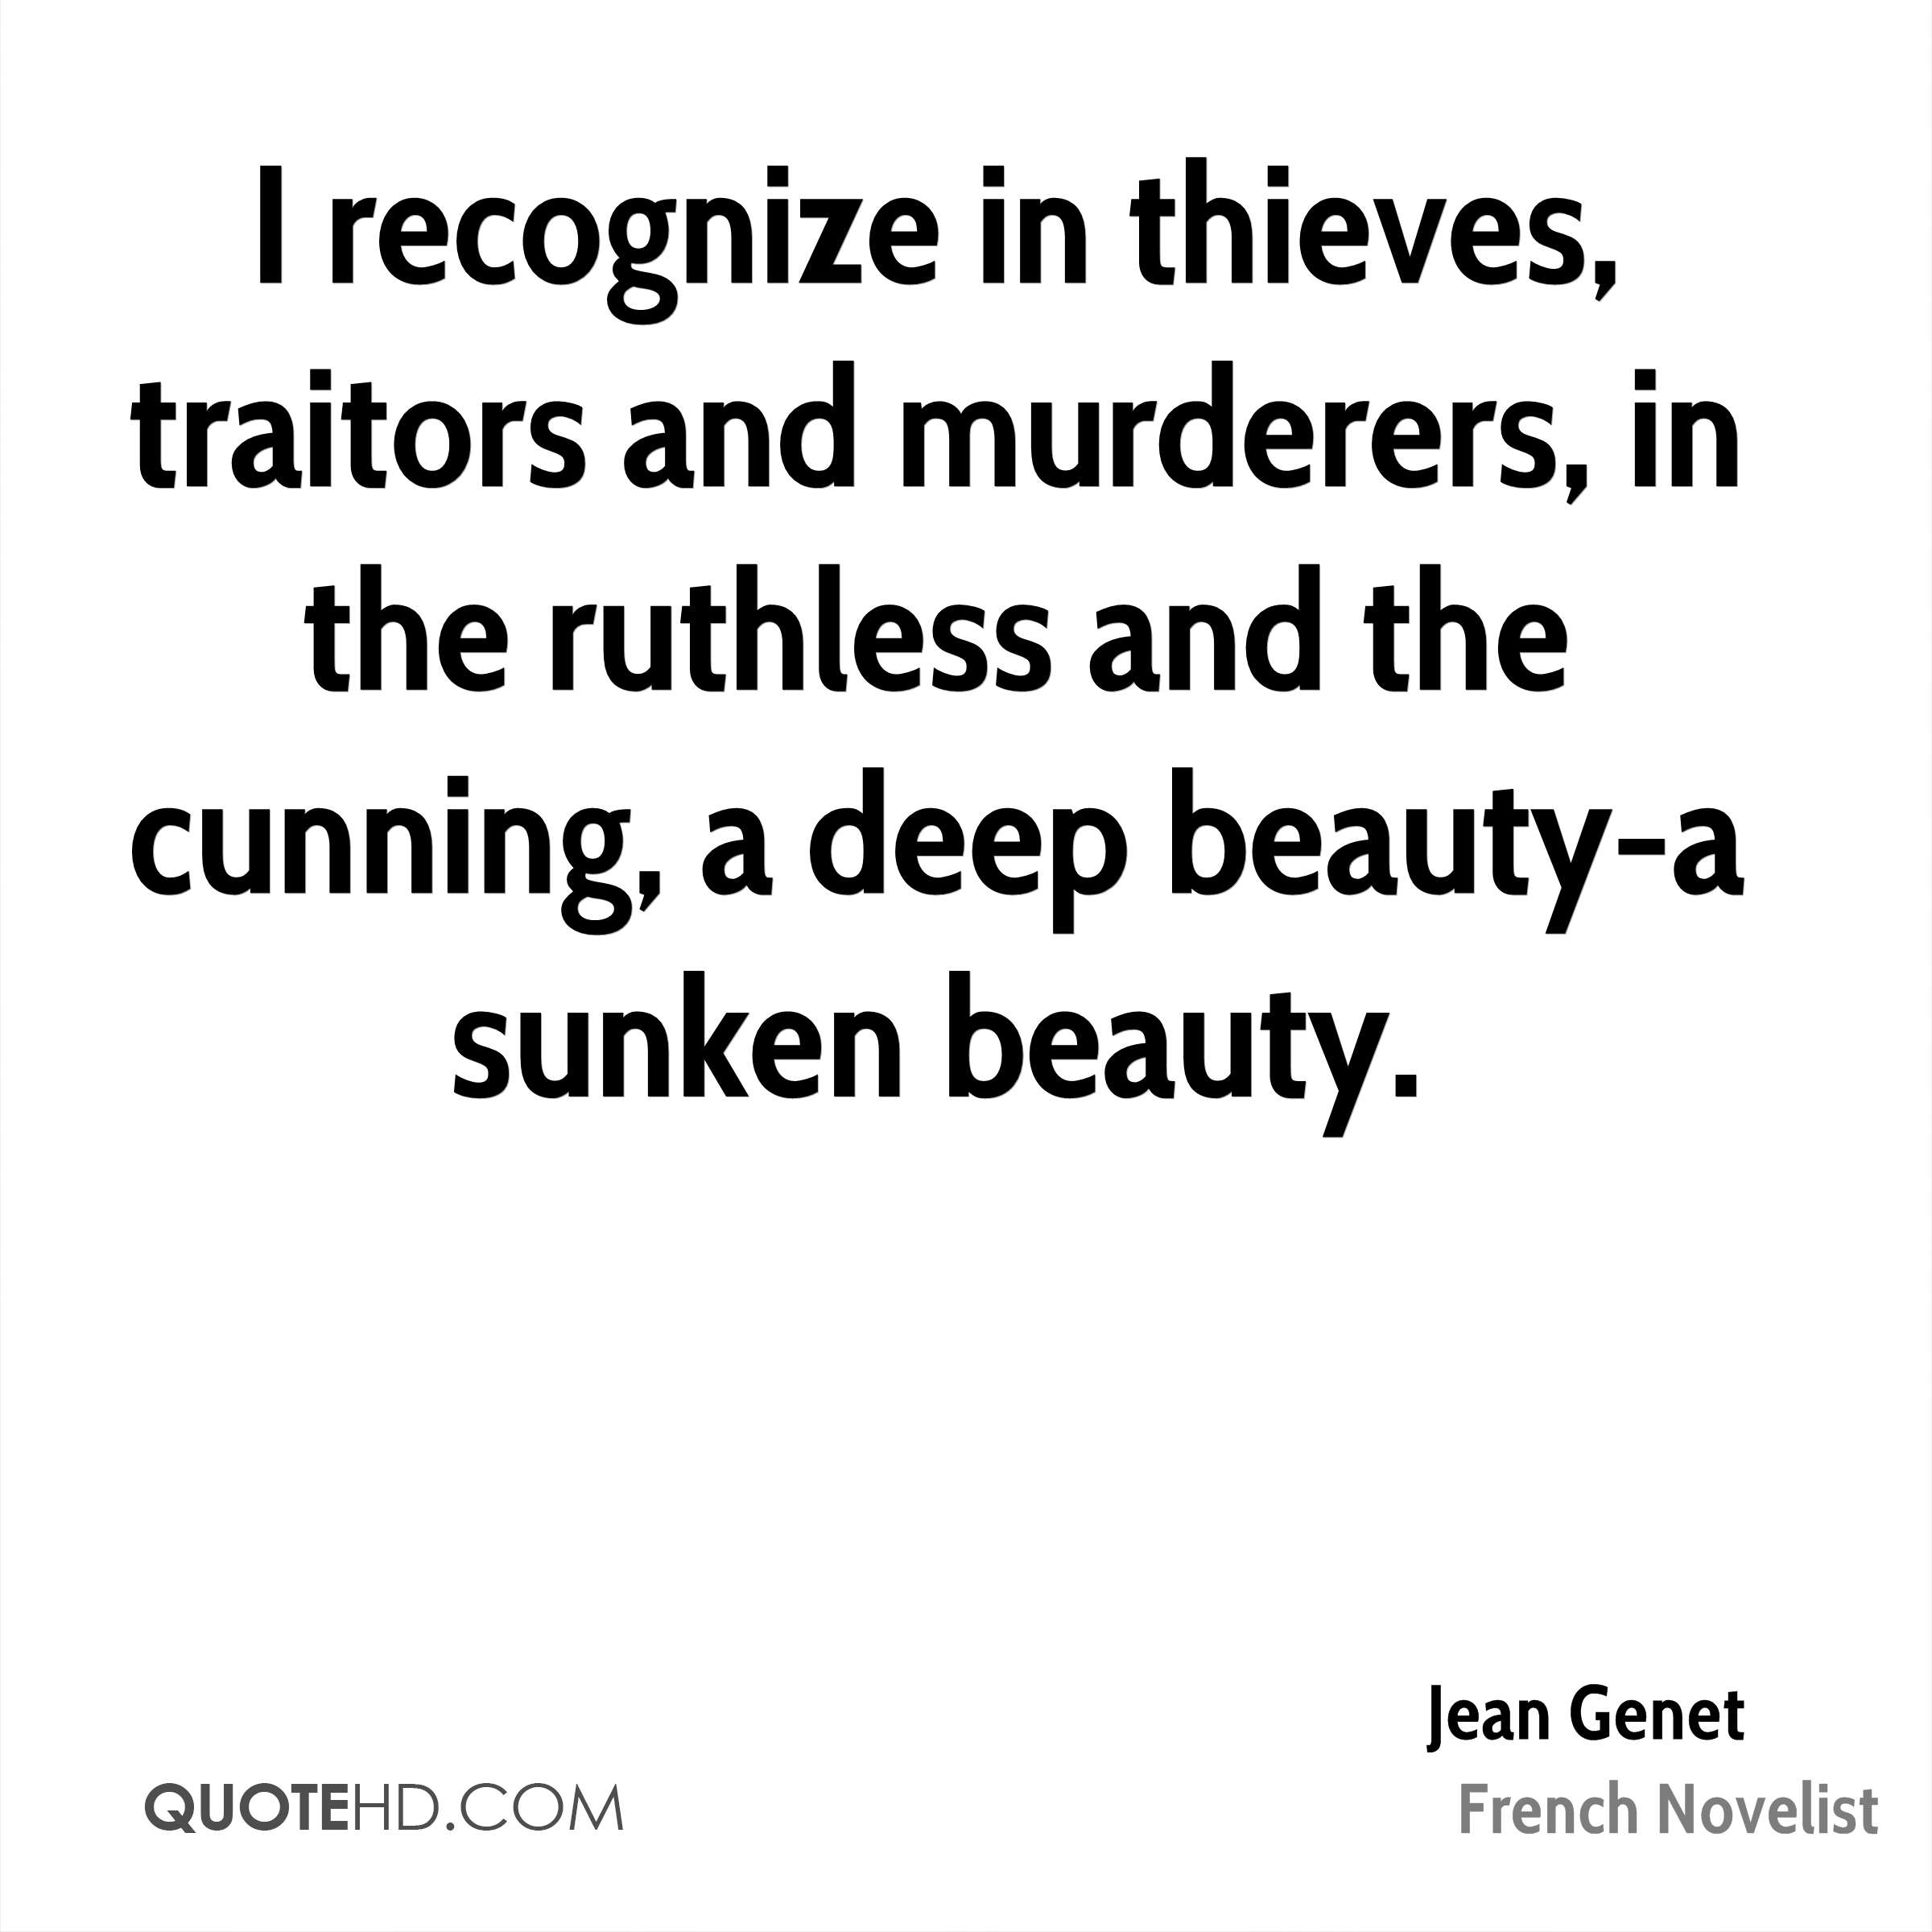 I recognize in thieves, traitors and murderers, in the ruthless and the cunning, a deep beauty-a sunken beauty.